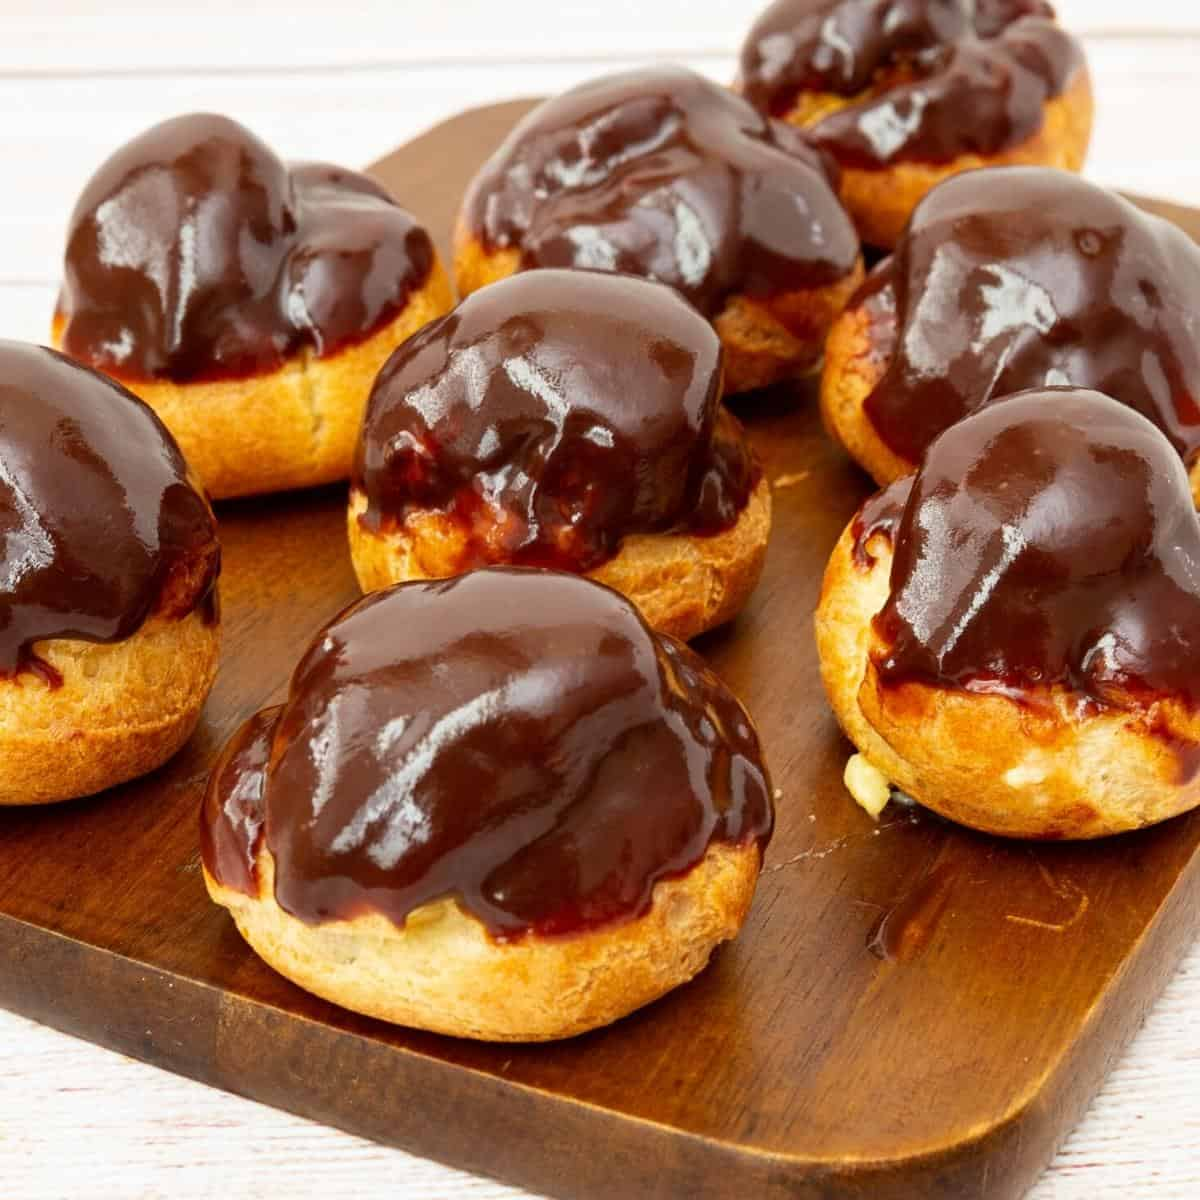 Chocolate glazed profiteroles on a wooden board.